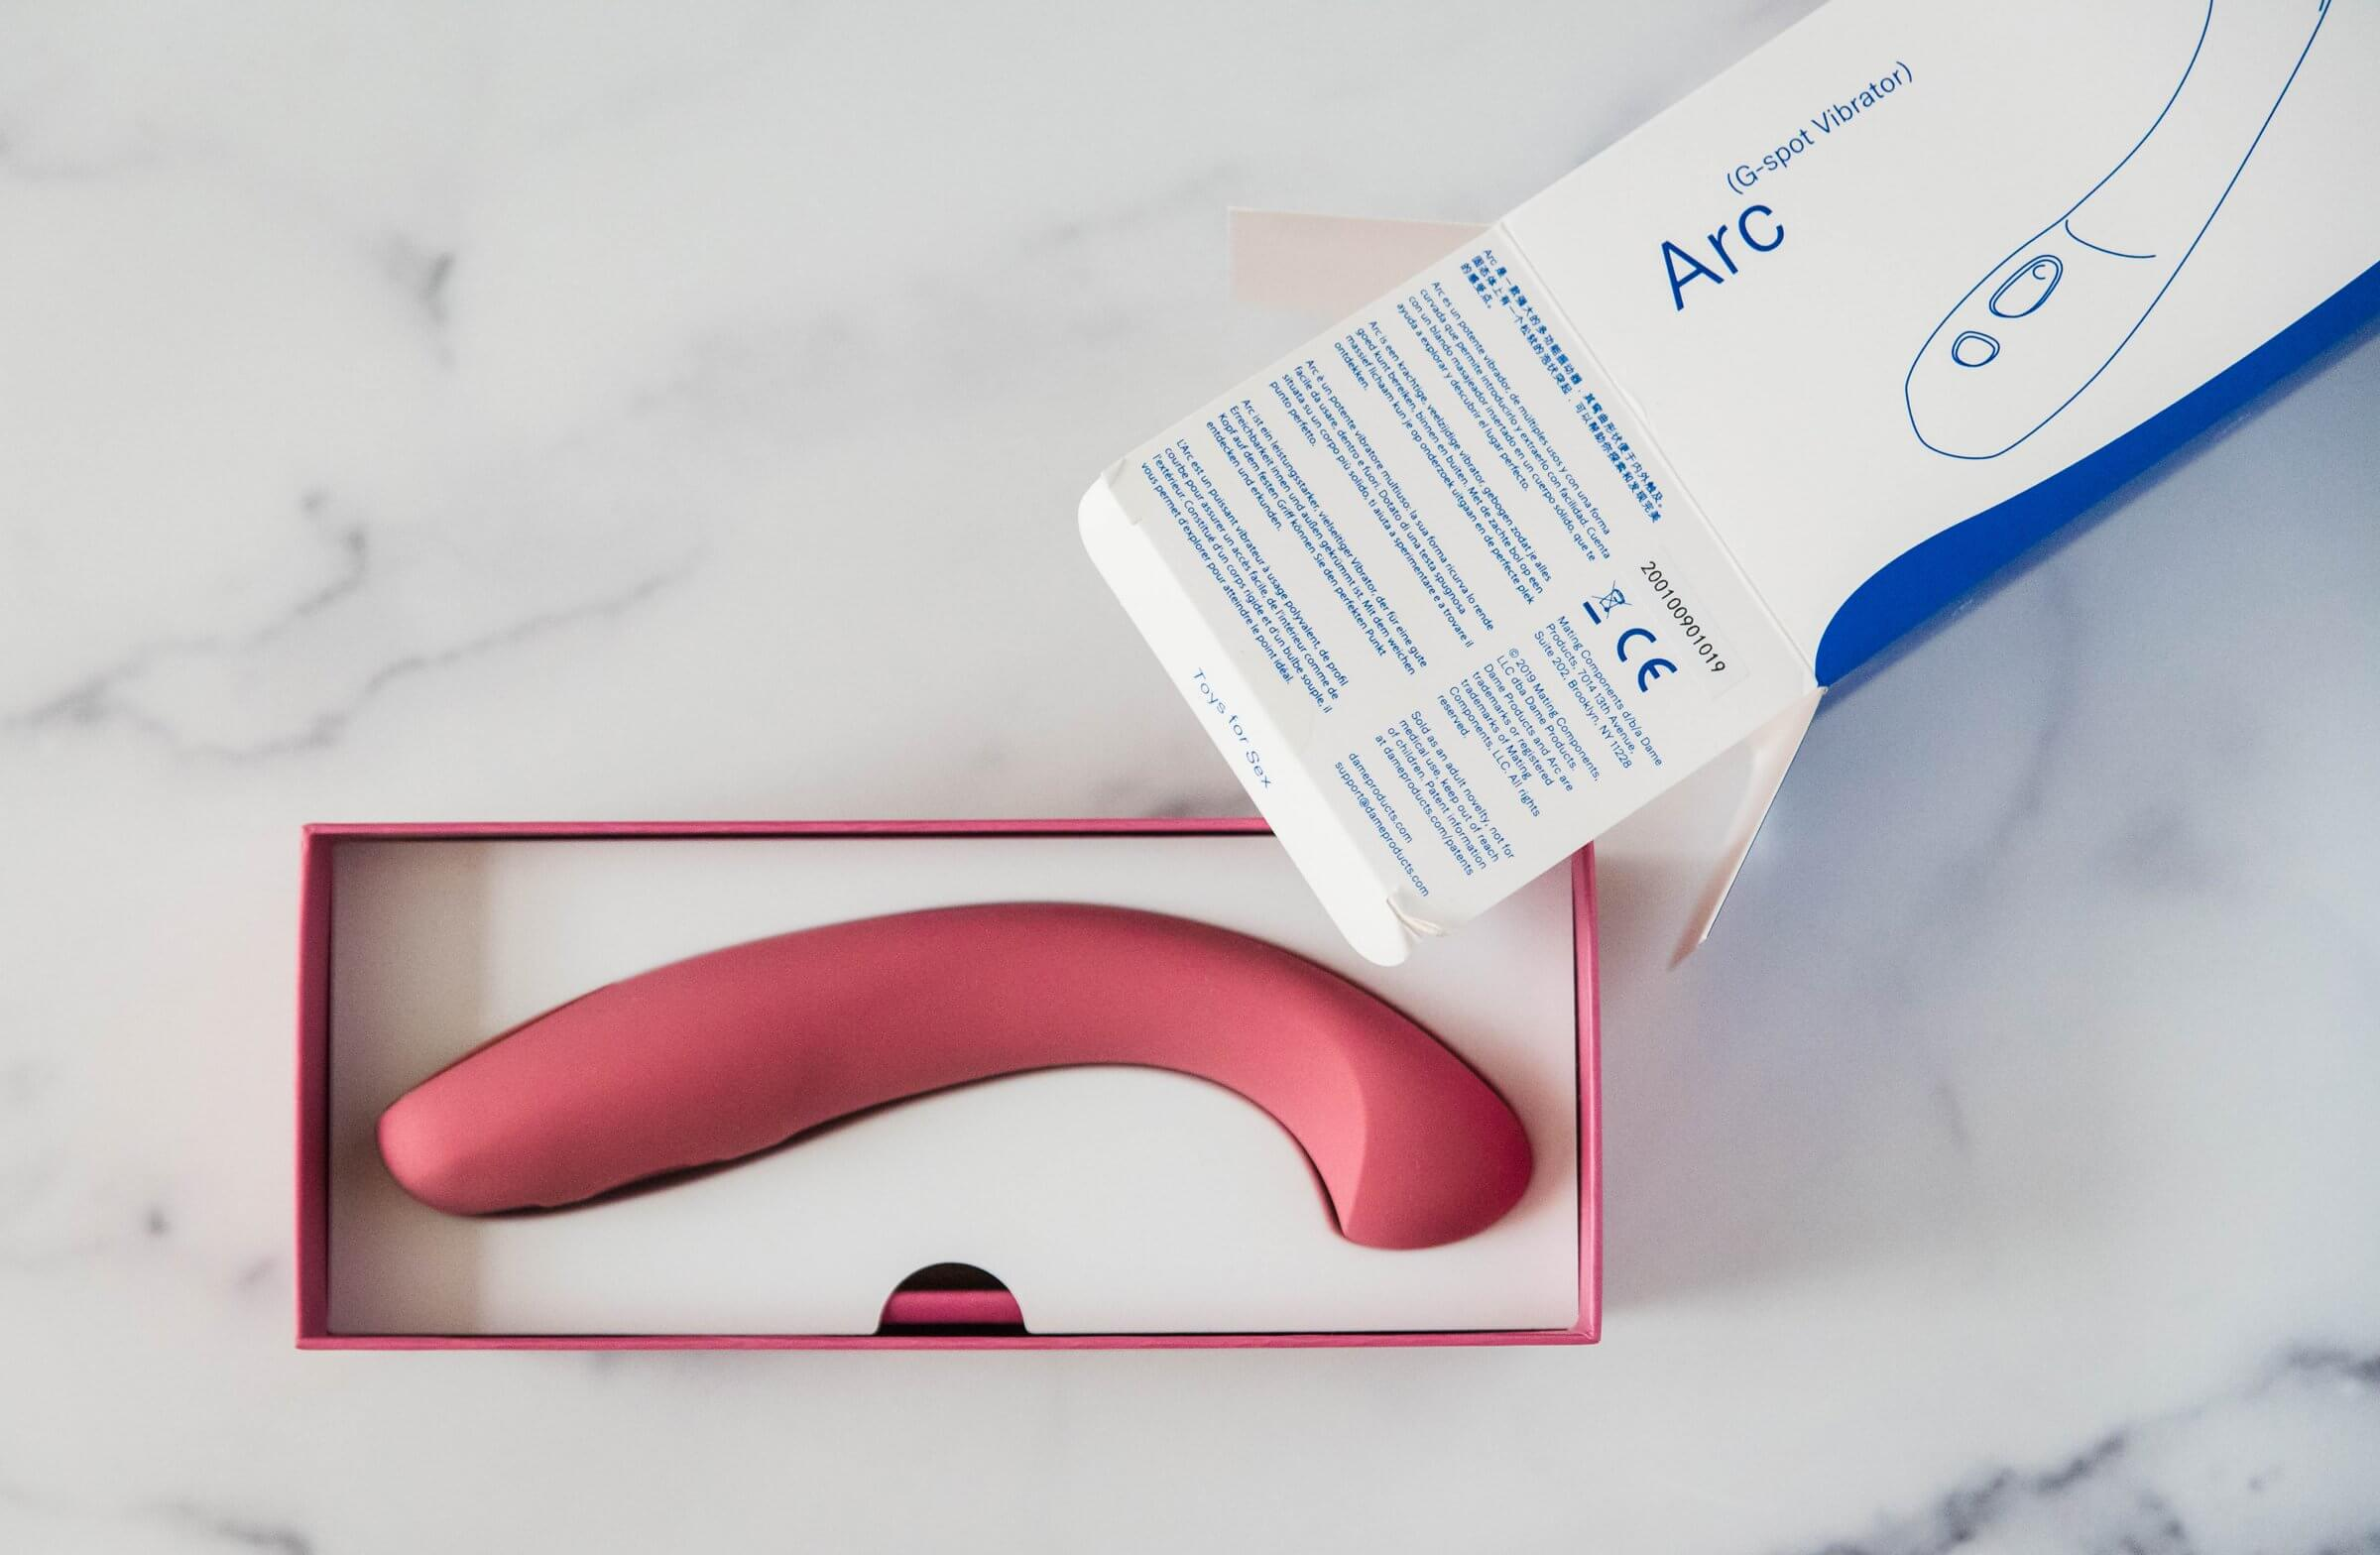 Dame Arc in packaging box